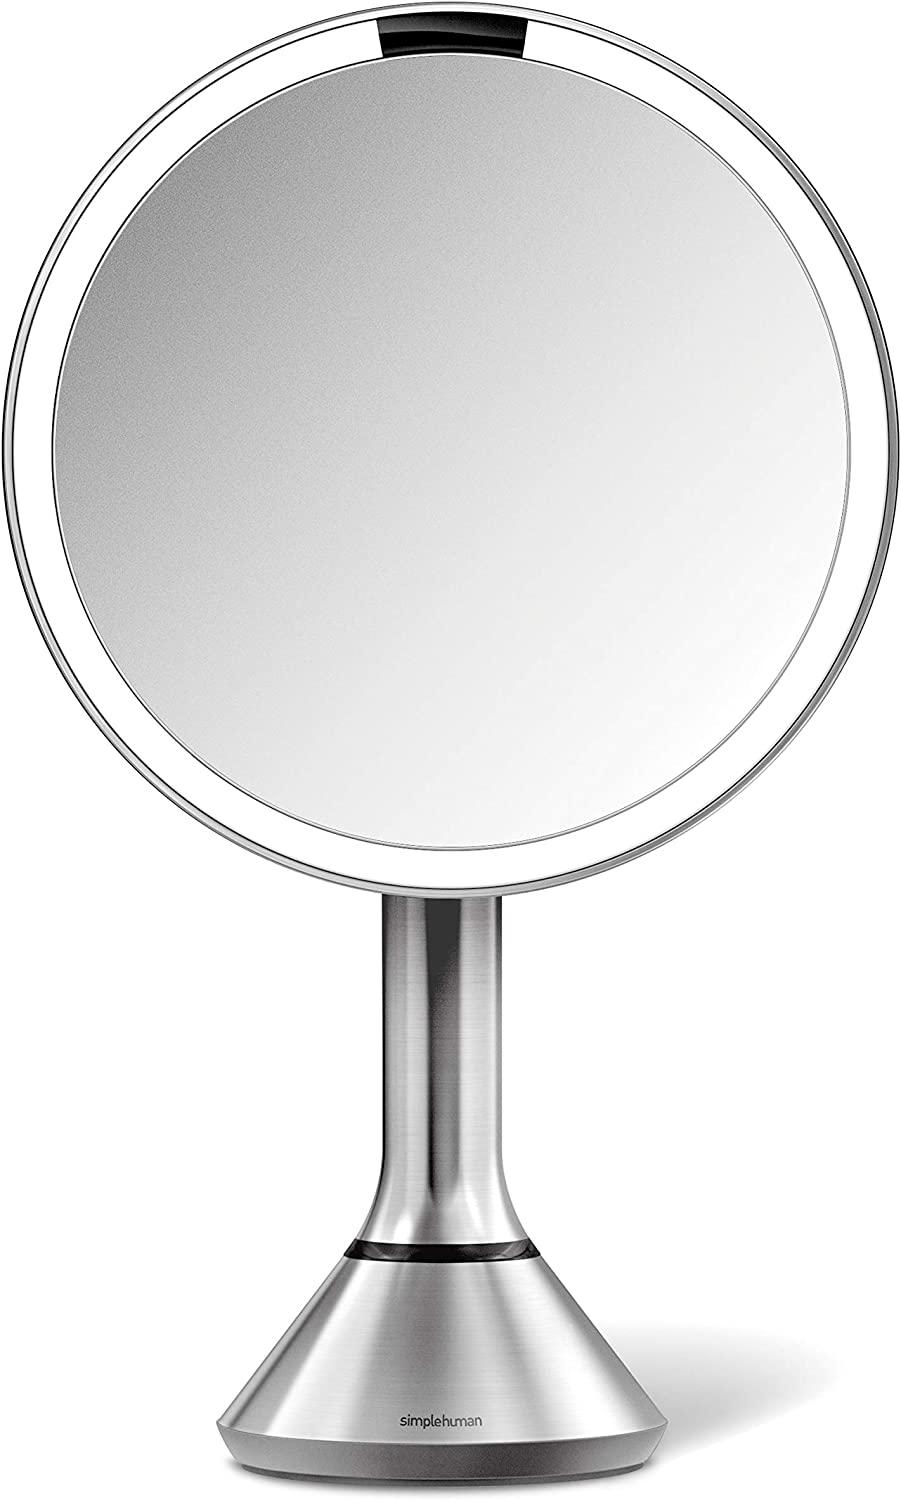 simplehuman Sensor Lighted Makeup Vanity Mirror, 8 Round with Touch-Control Brightness, 5X Magnification, Brushed Stainless Steel, Rechargeable and Cordless